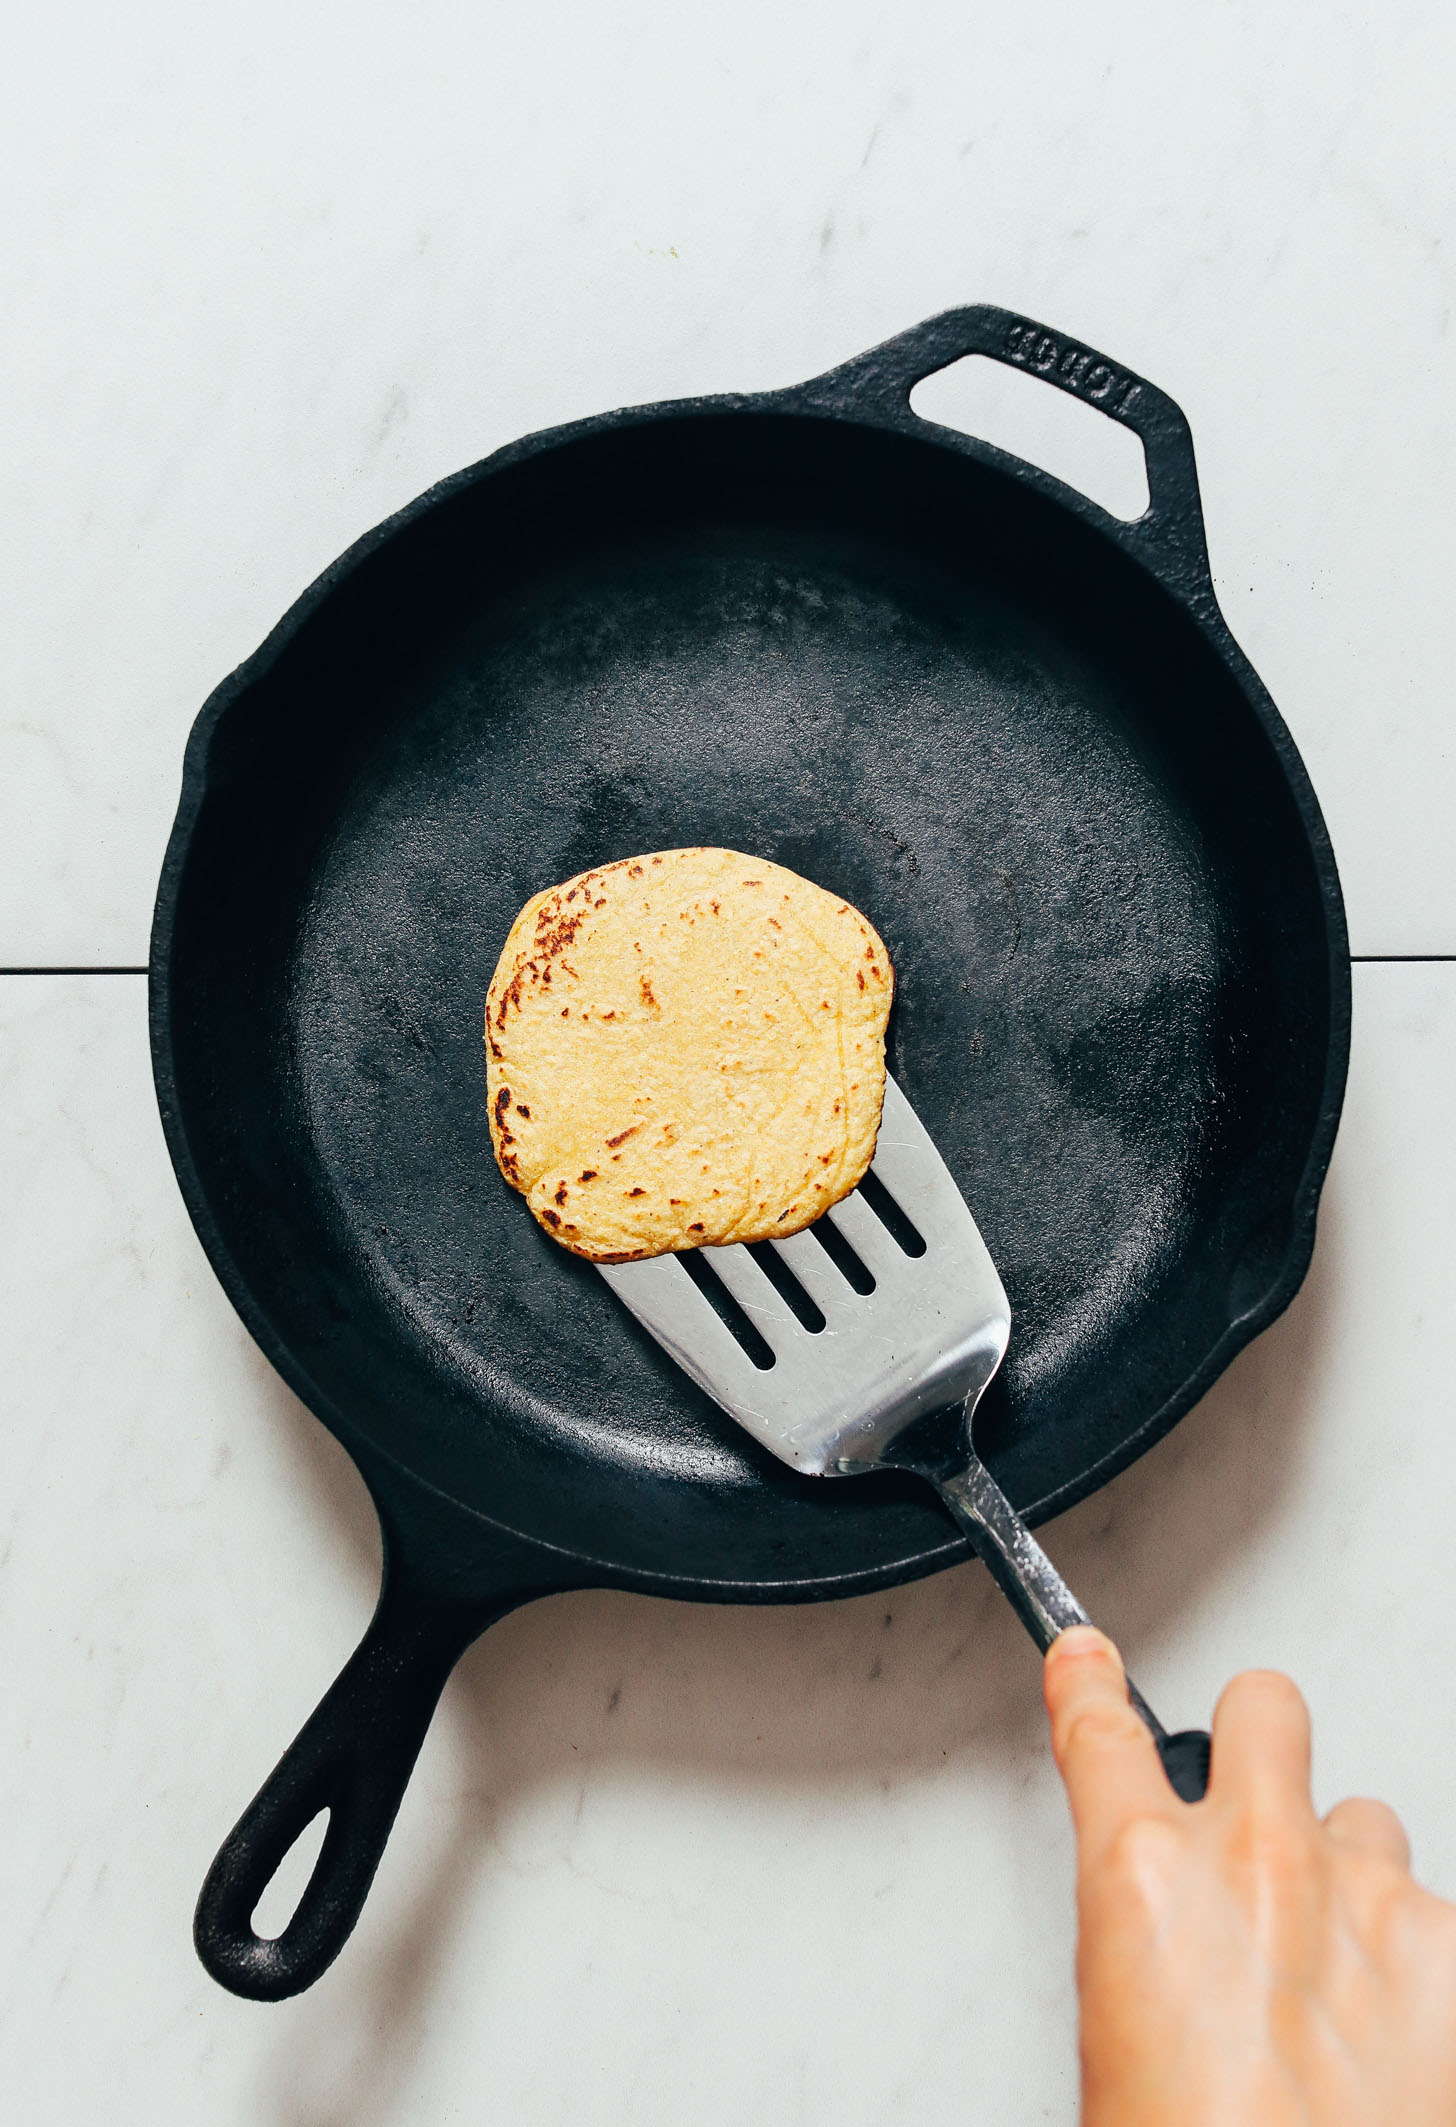 Using a metal spatula to flip a homemade corn tortilla